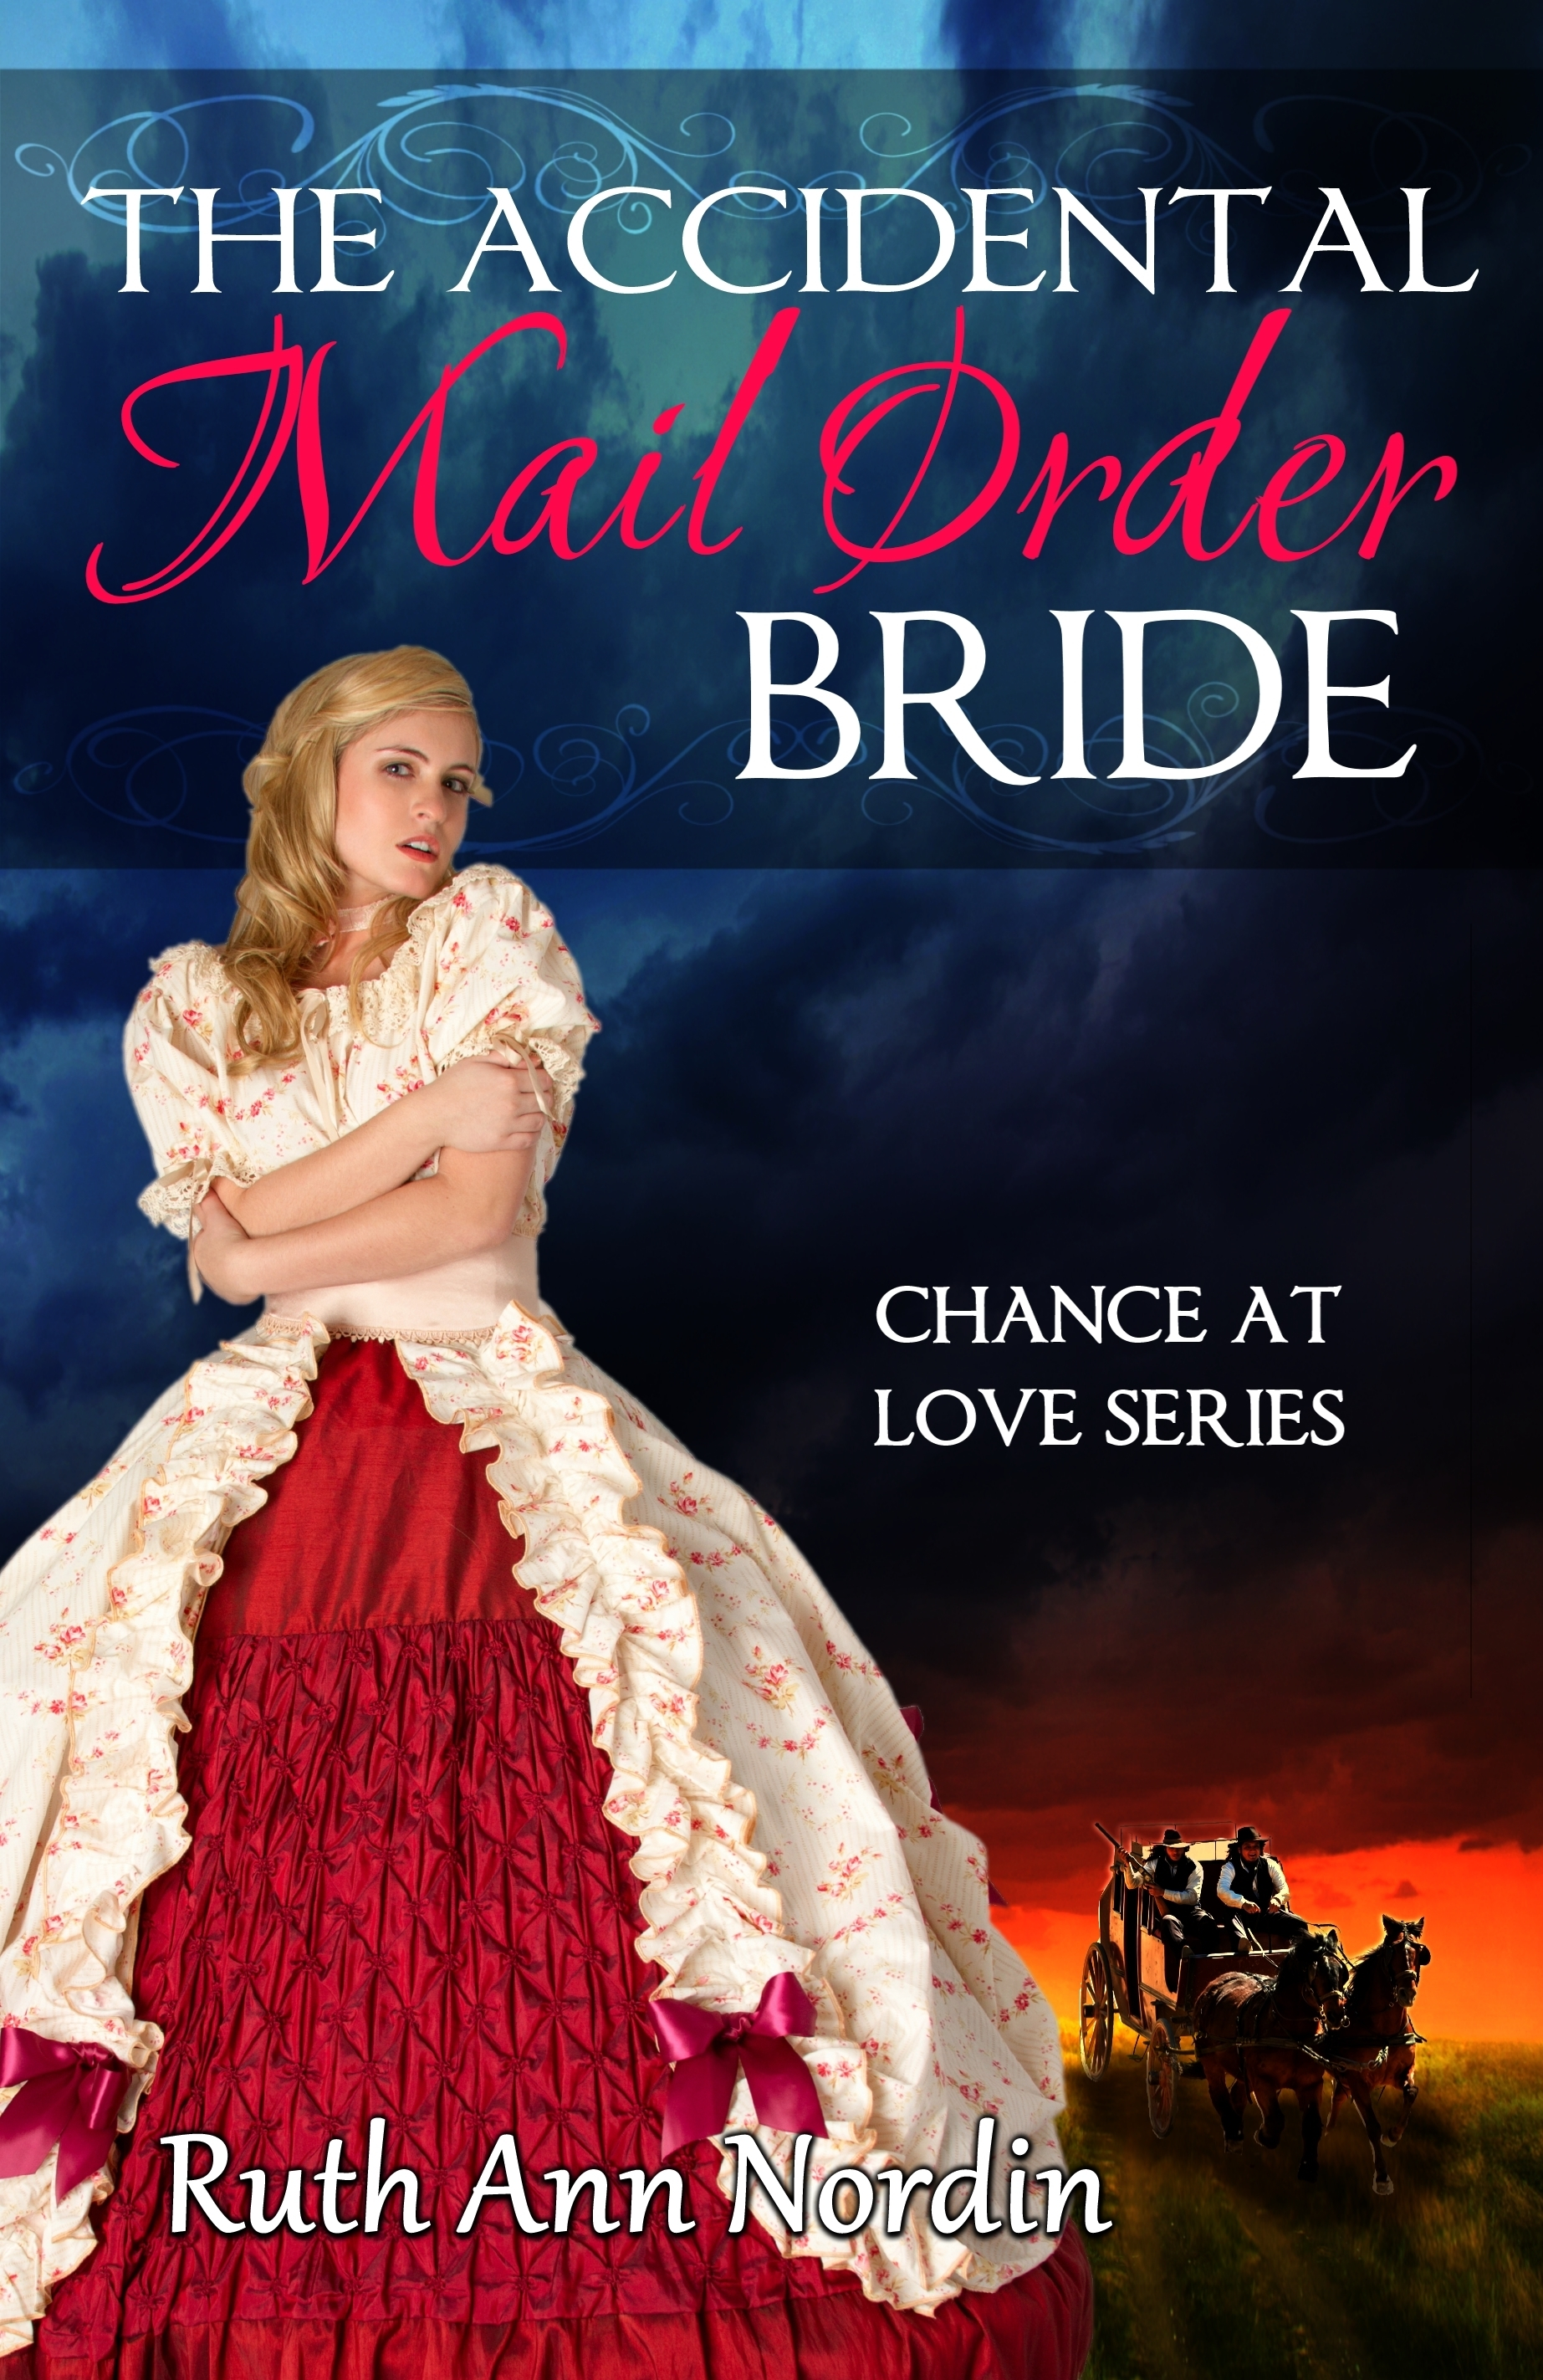 The Accidental Mail Order Bride [electronic resource]